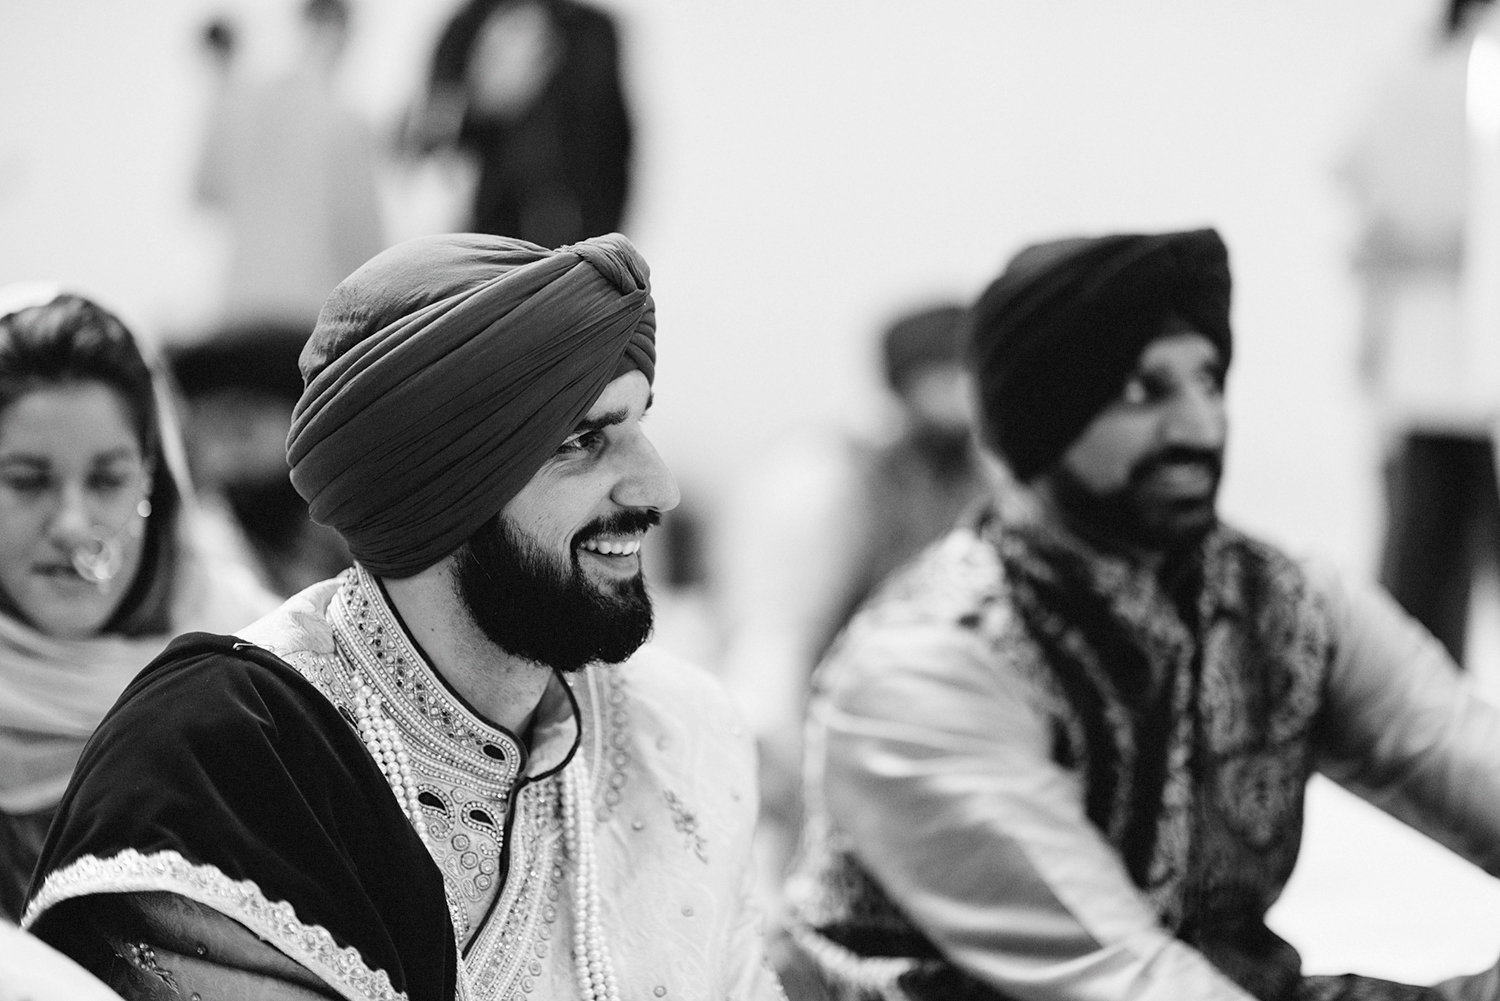 Toronto-Photojournalism-wedding-photographers-3B-Photography-Candid-Documentary-Film-Photography-Analog-Ontario-Hamilton-Port-Perry-Venue-temple-ceremony-sikh-groom-laughing.jpg